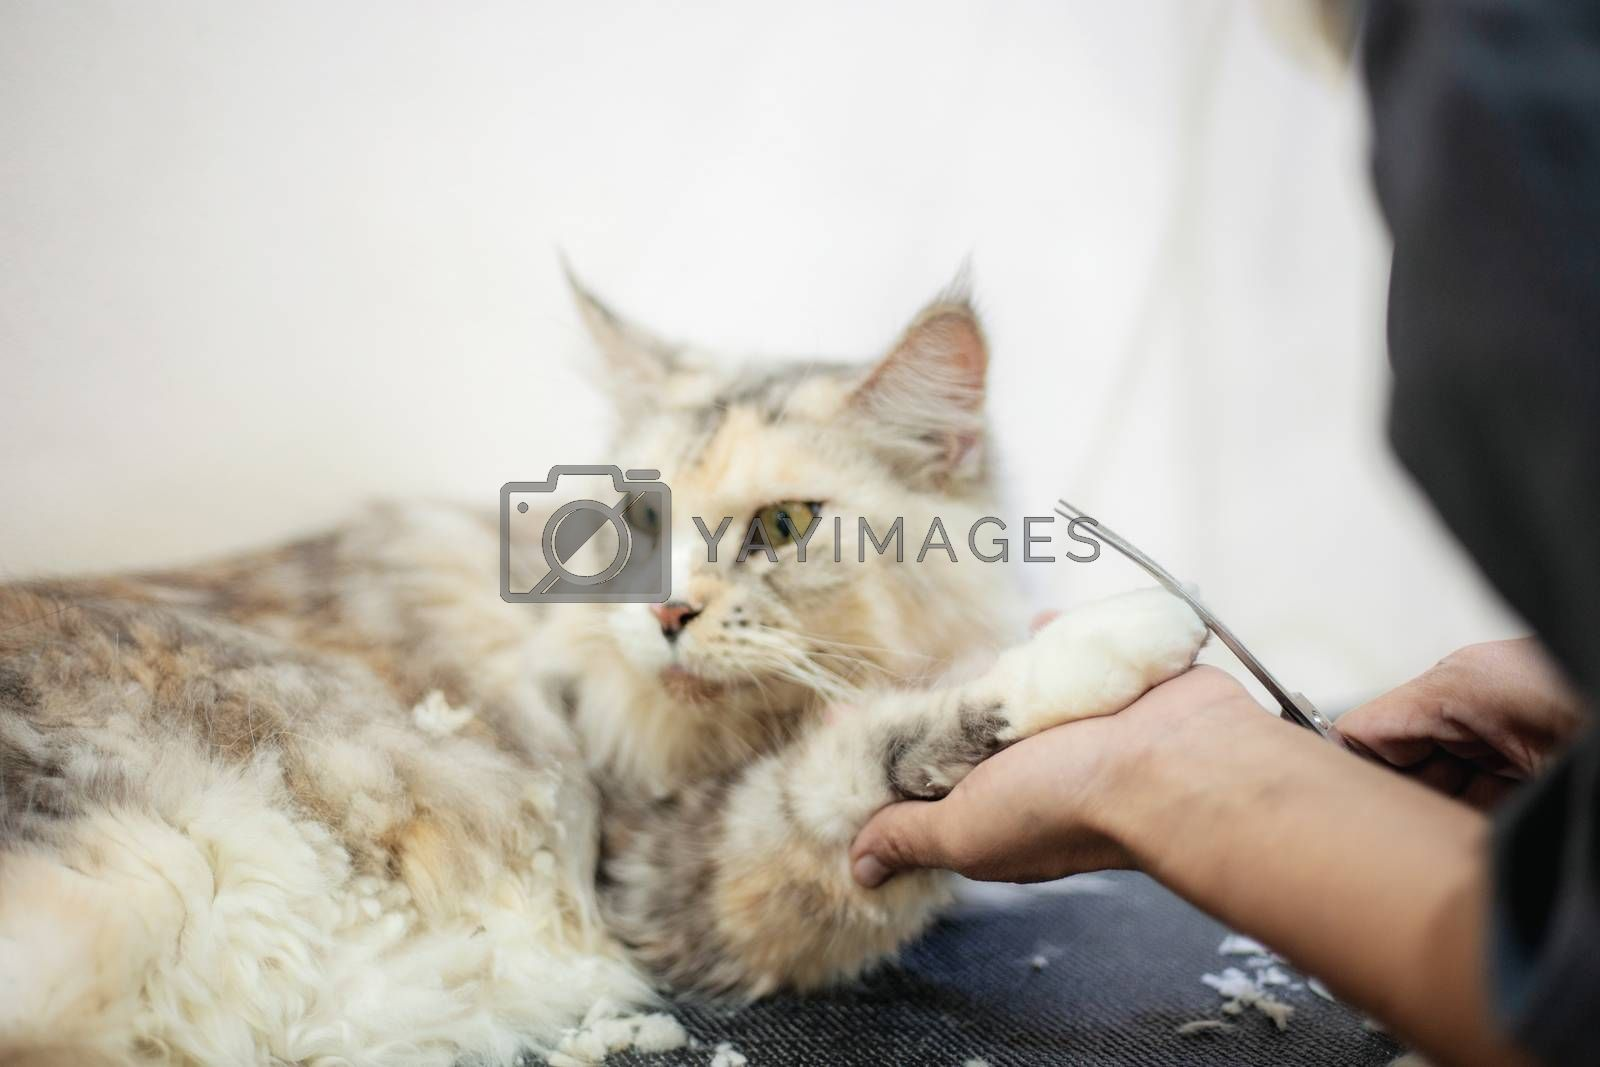 Woman are cutting hair and holding of foot and cleaning a cat.